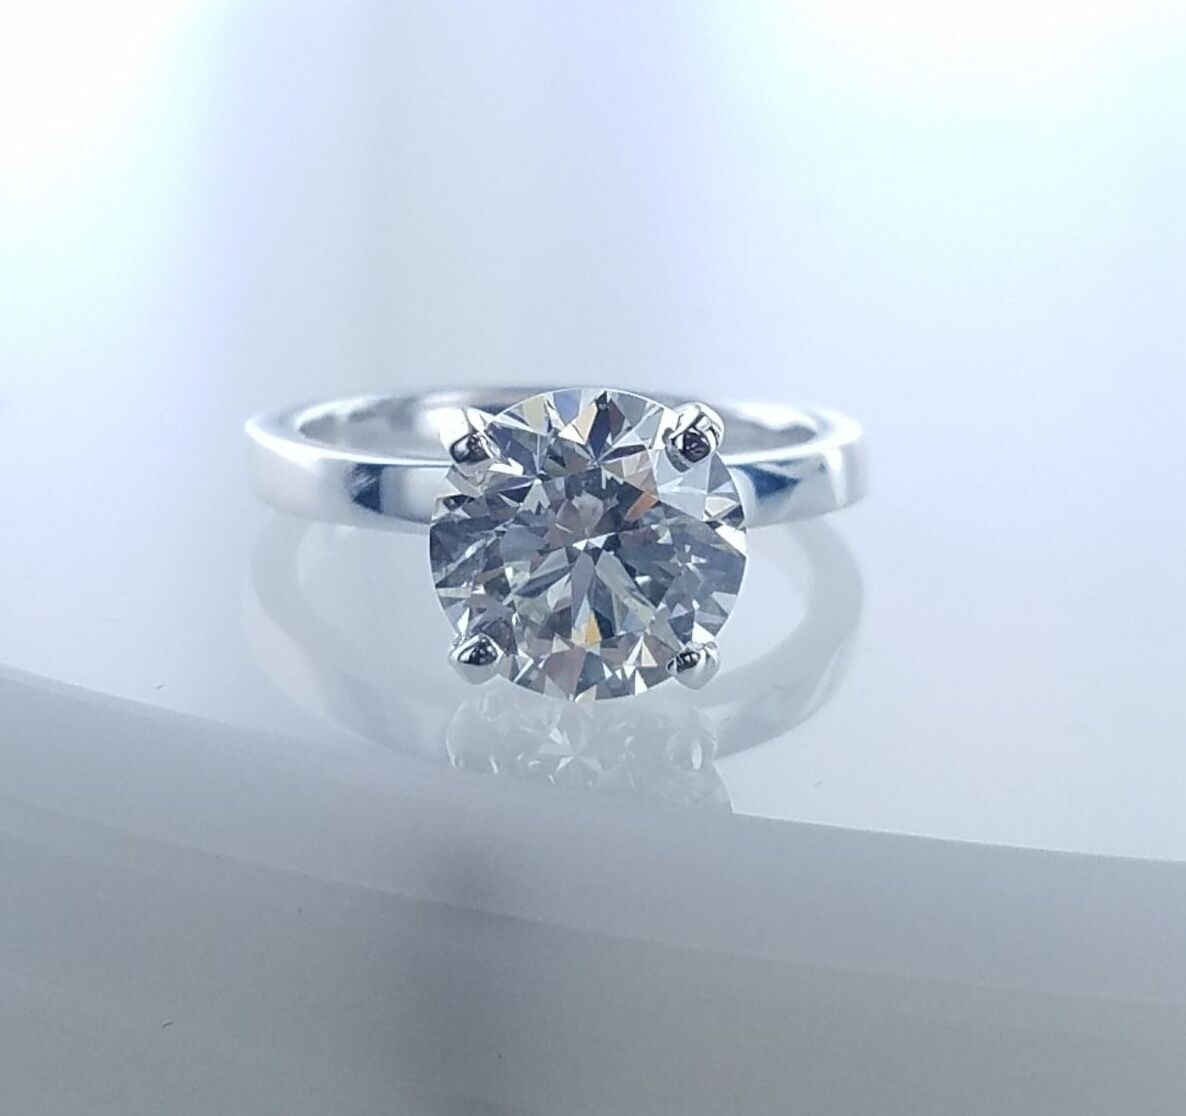 2.72 CT Solitaire Diamond Engagement Ring GIA Certified M-SI1 Ladies Round Cut